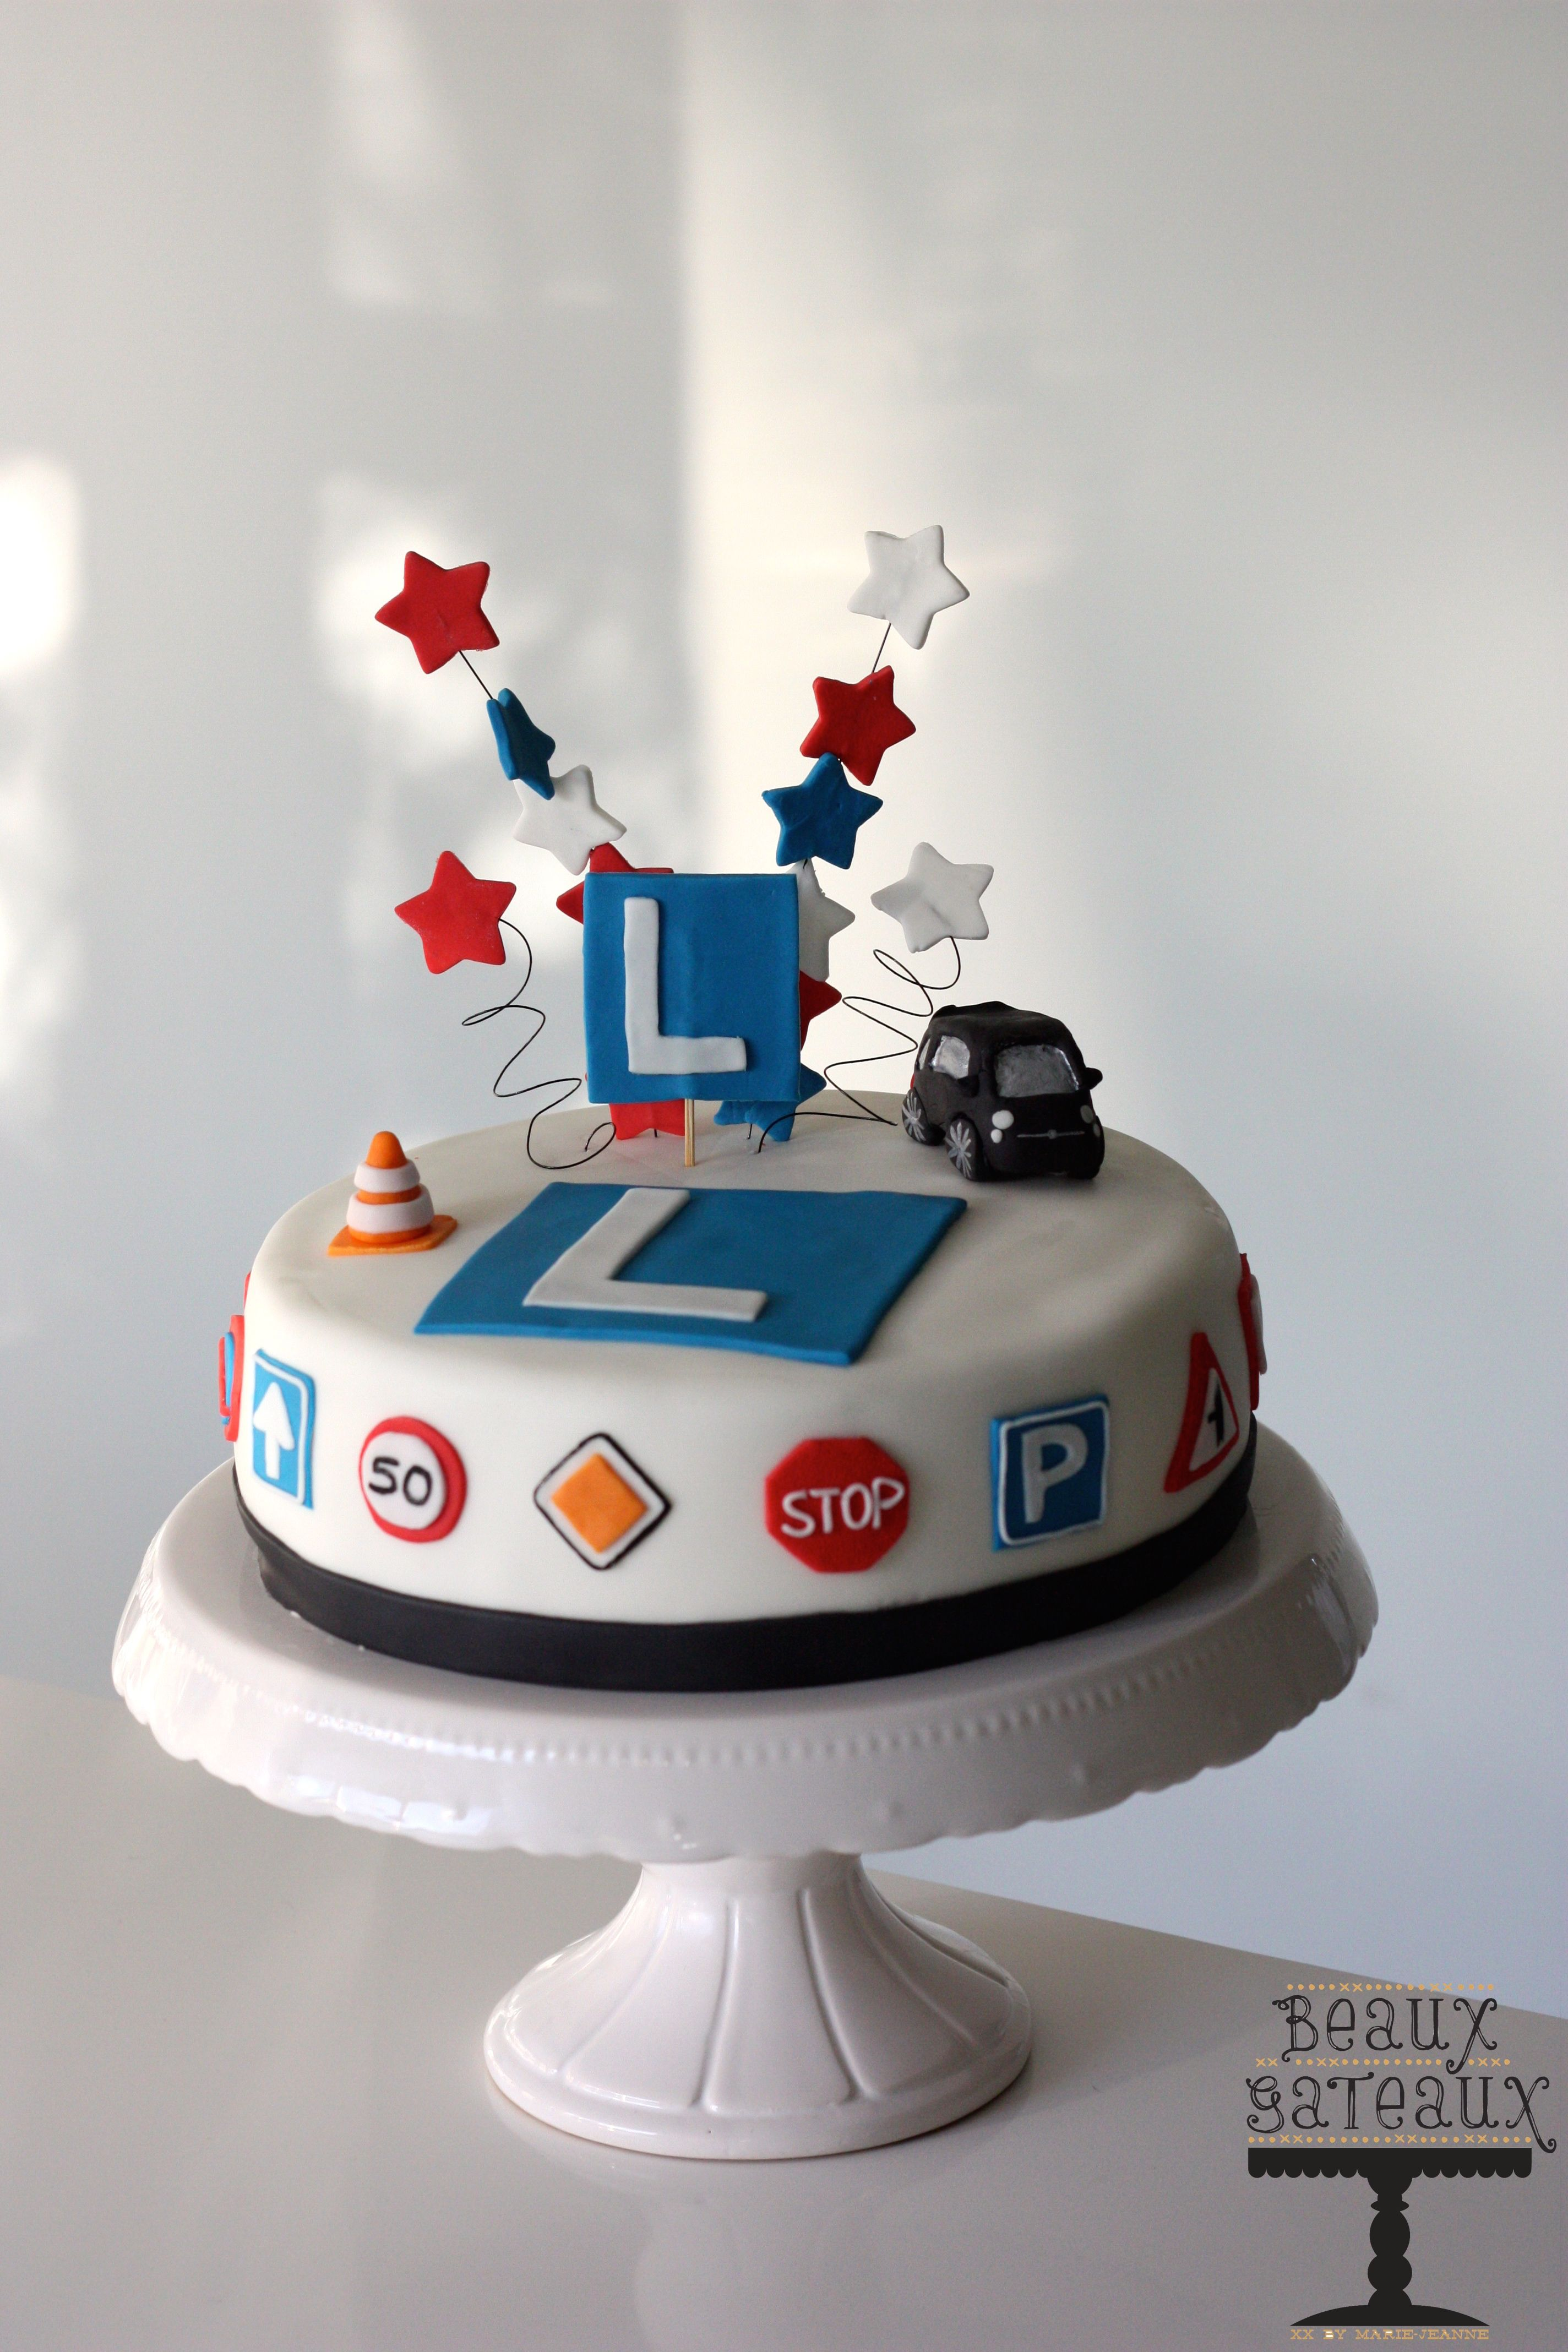 Cake with the theme